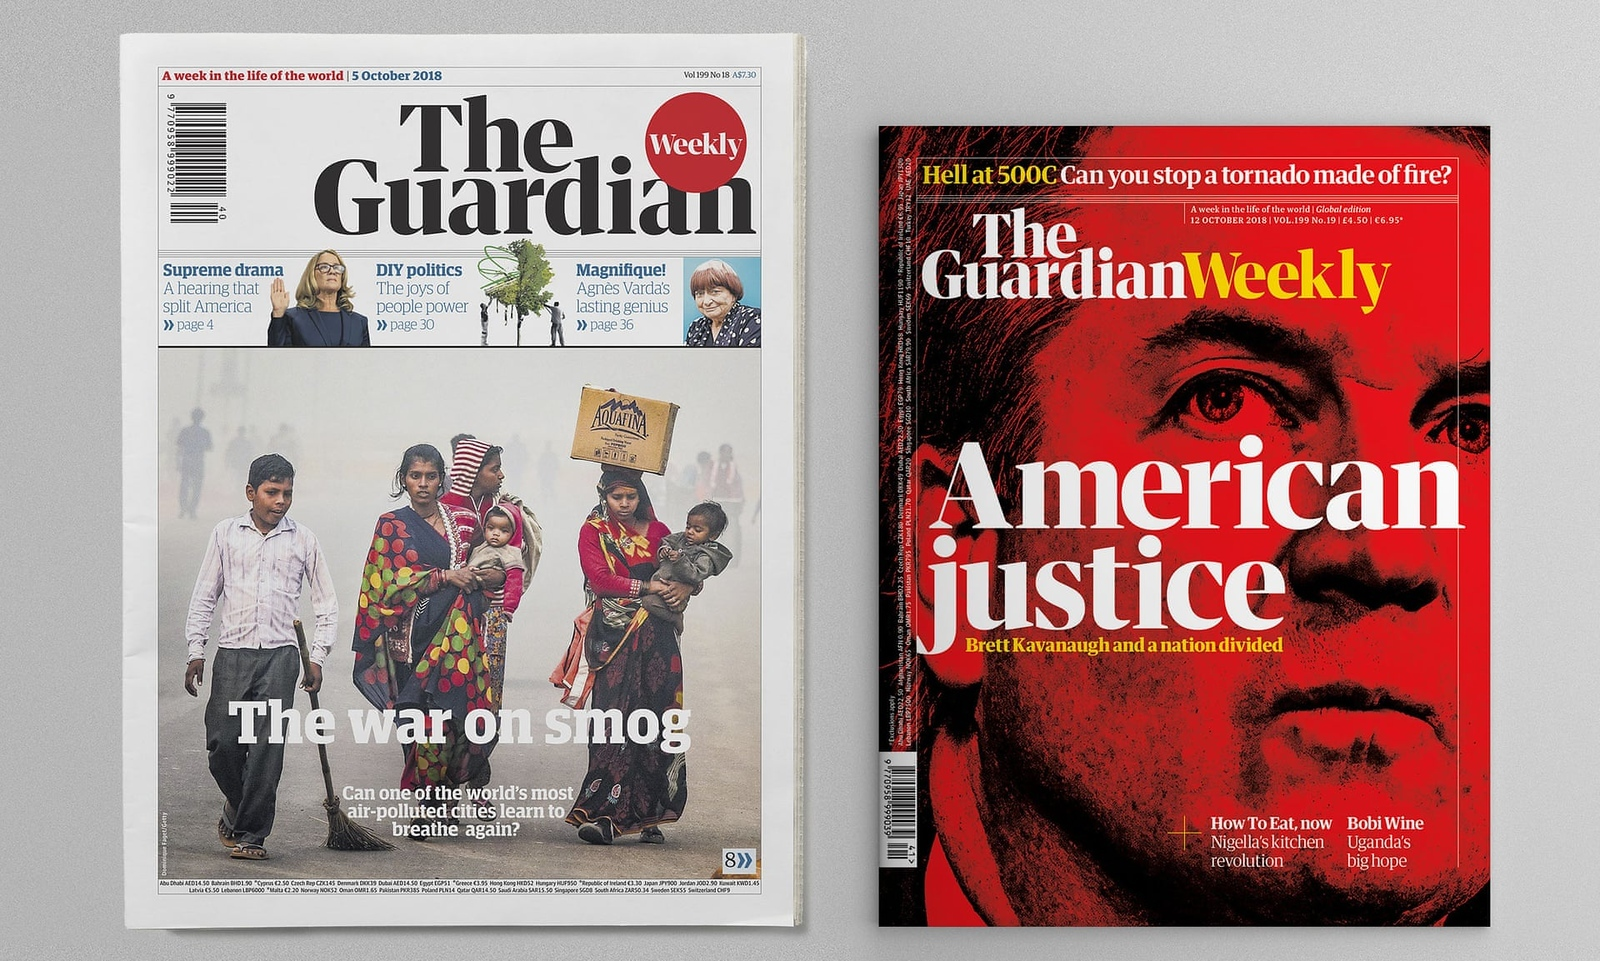 The Guardian Weekly issues of 5 October and 12 October 2018 (photo credit: The Guardian Weekly)